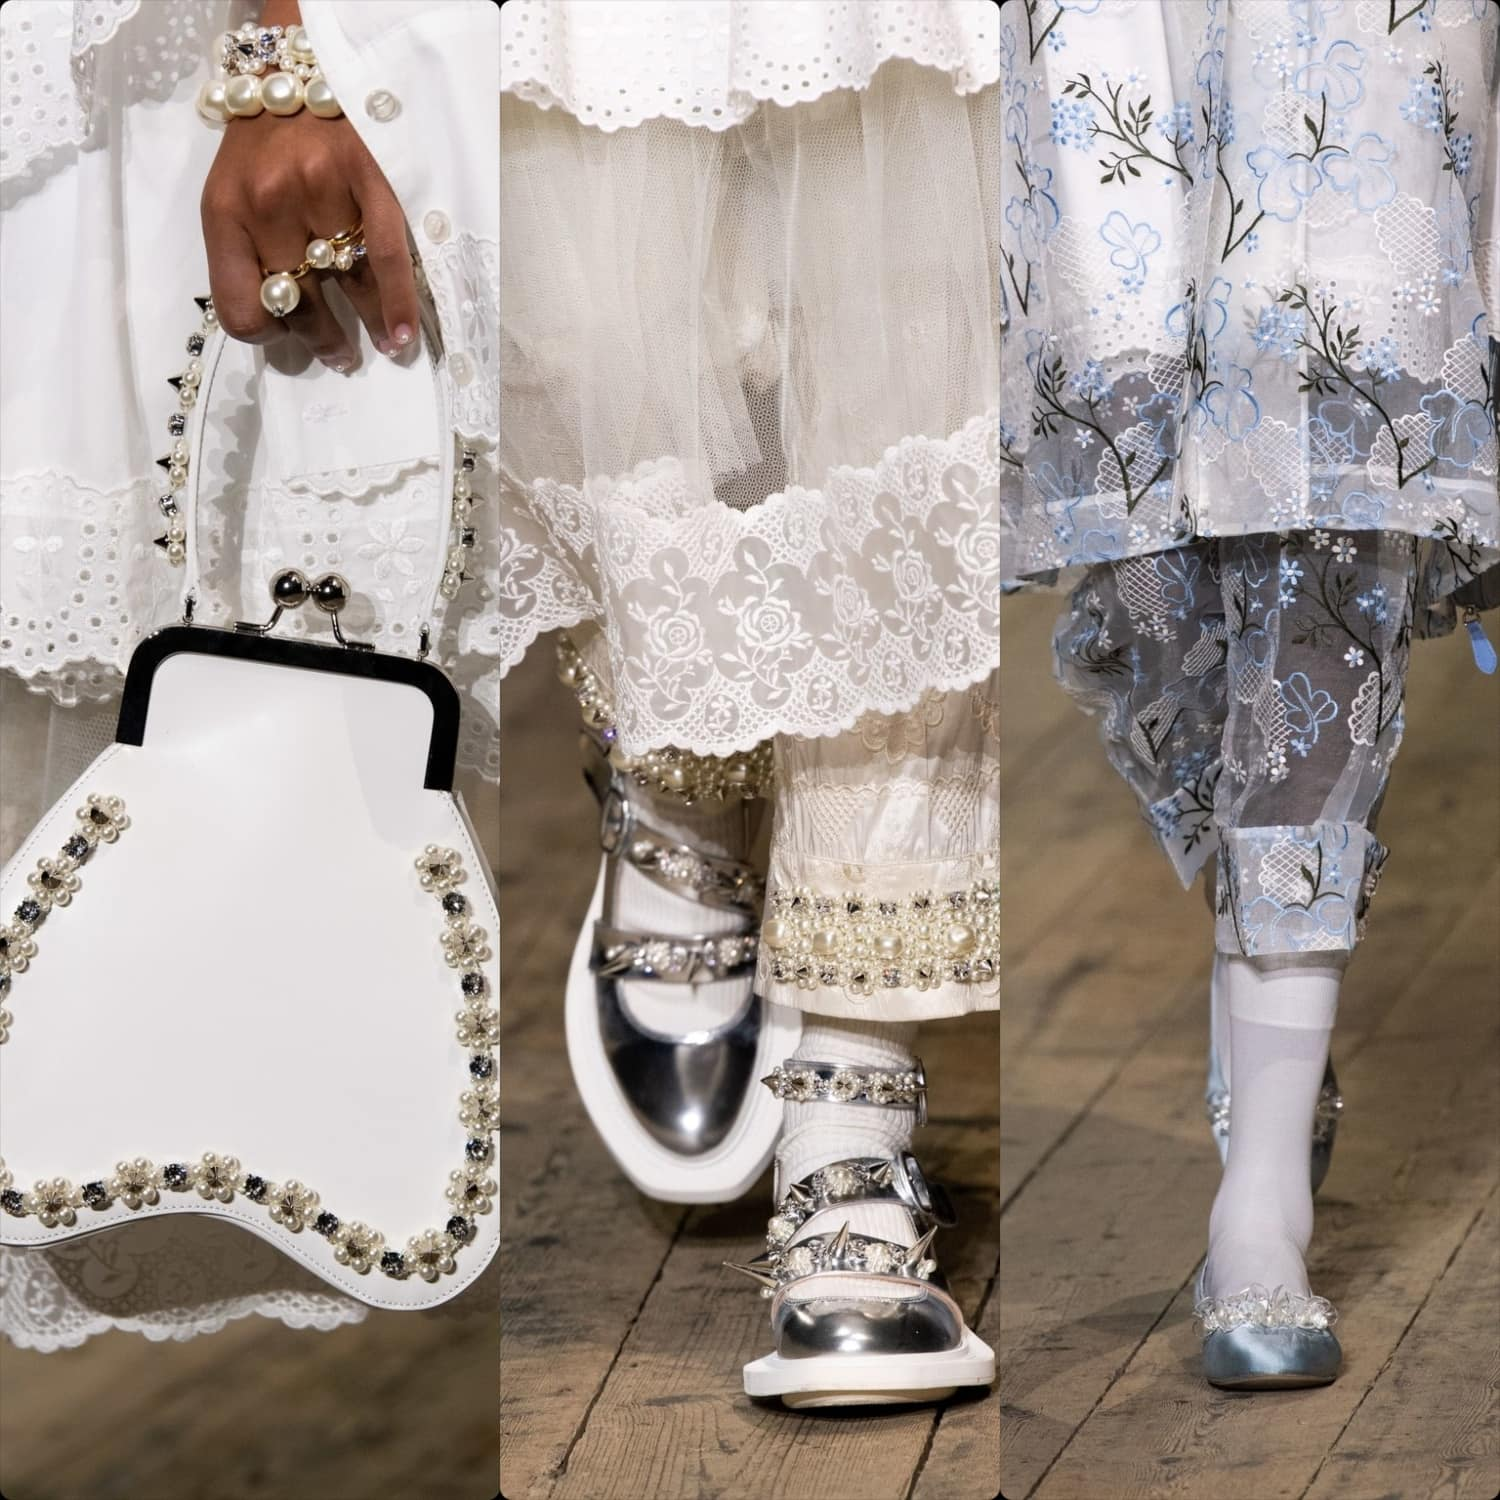 Simone Rocha Spring Summer 2020 London. RUNWAY MAGAZINE ® Collections. RUNWAY NOW / RUNWAY NEW